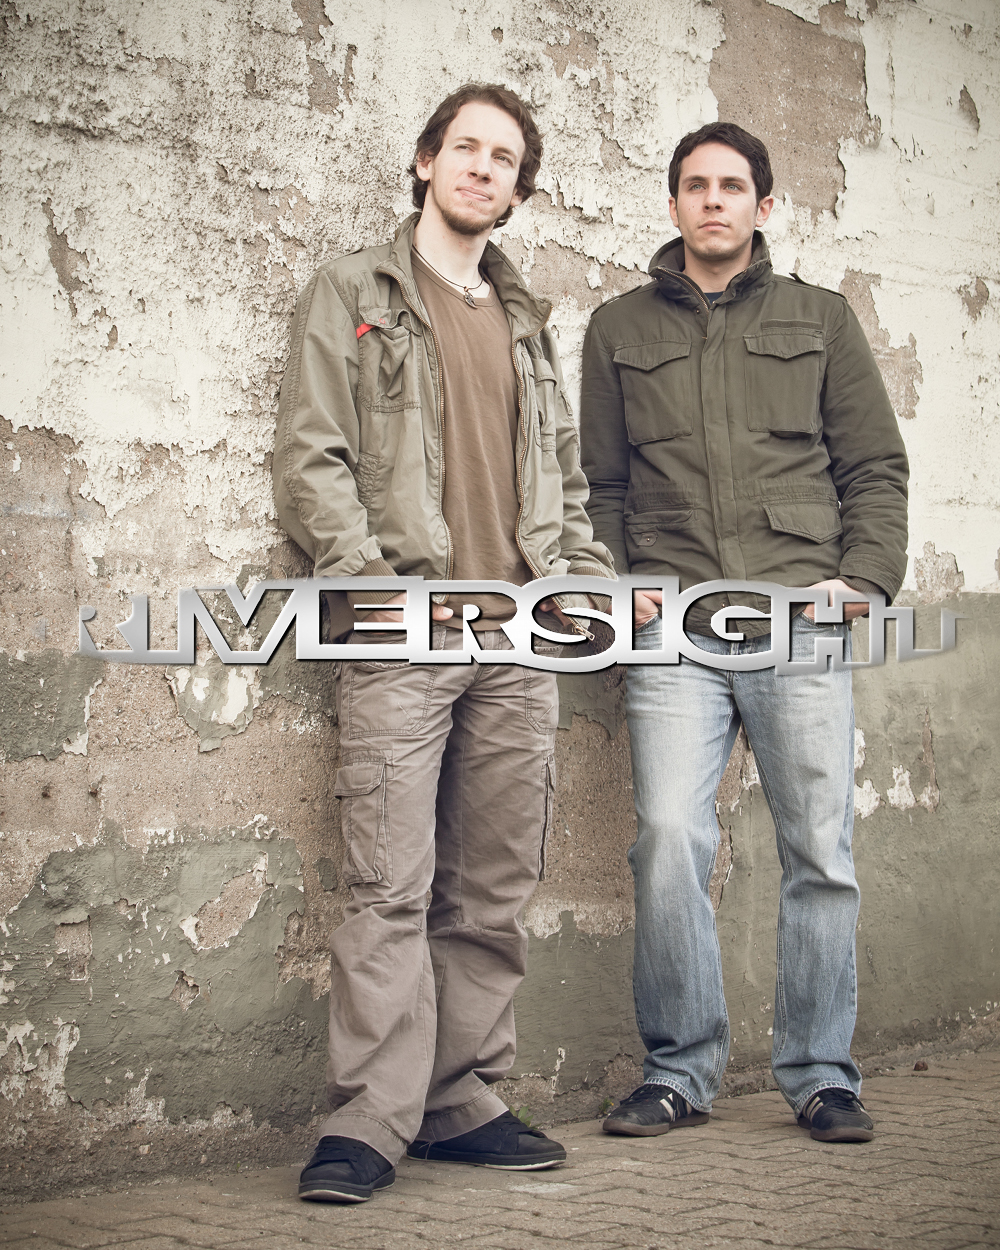 riversight 2